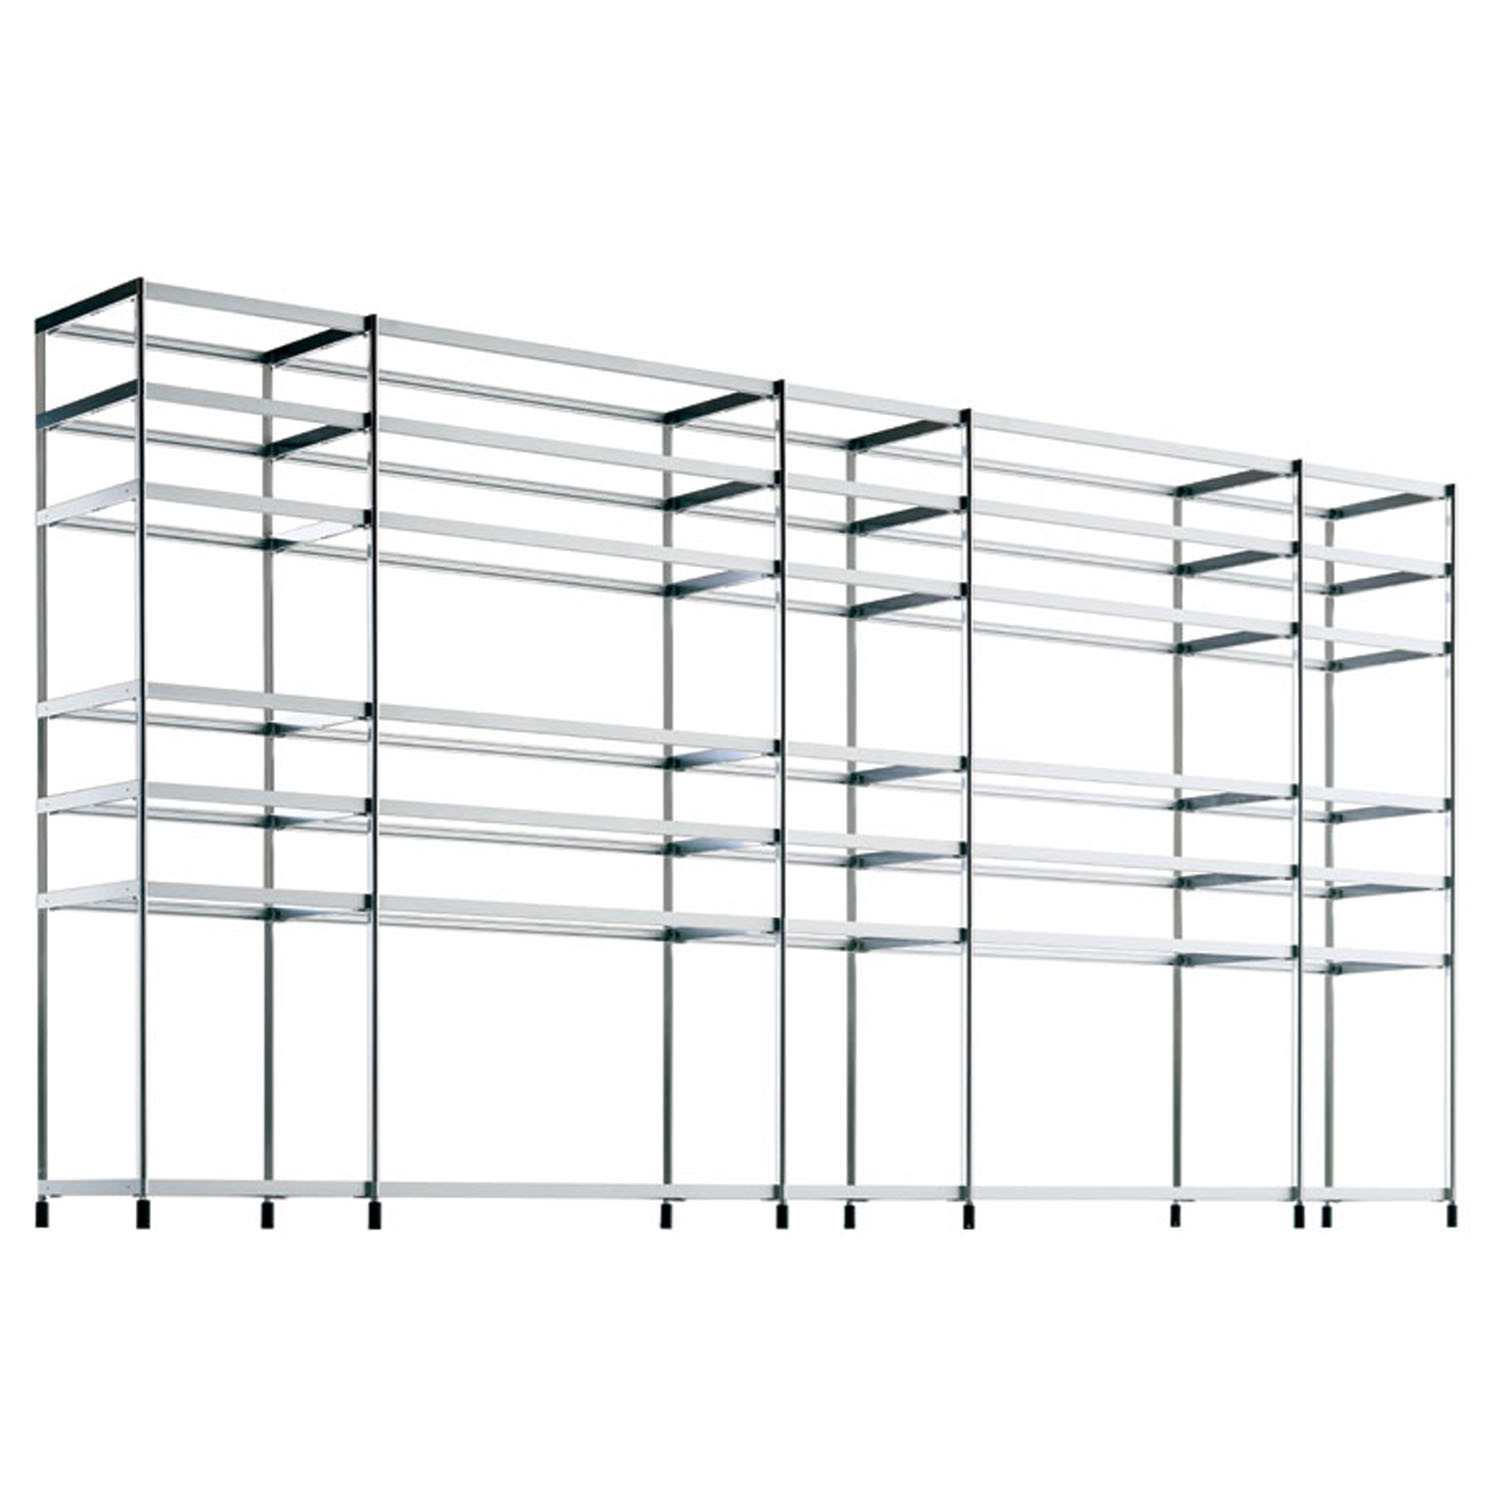 SEC Bookshelf structure is made of extruded aluminium